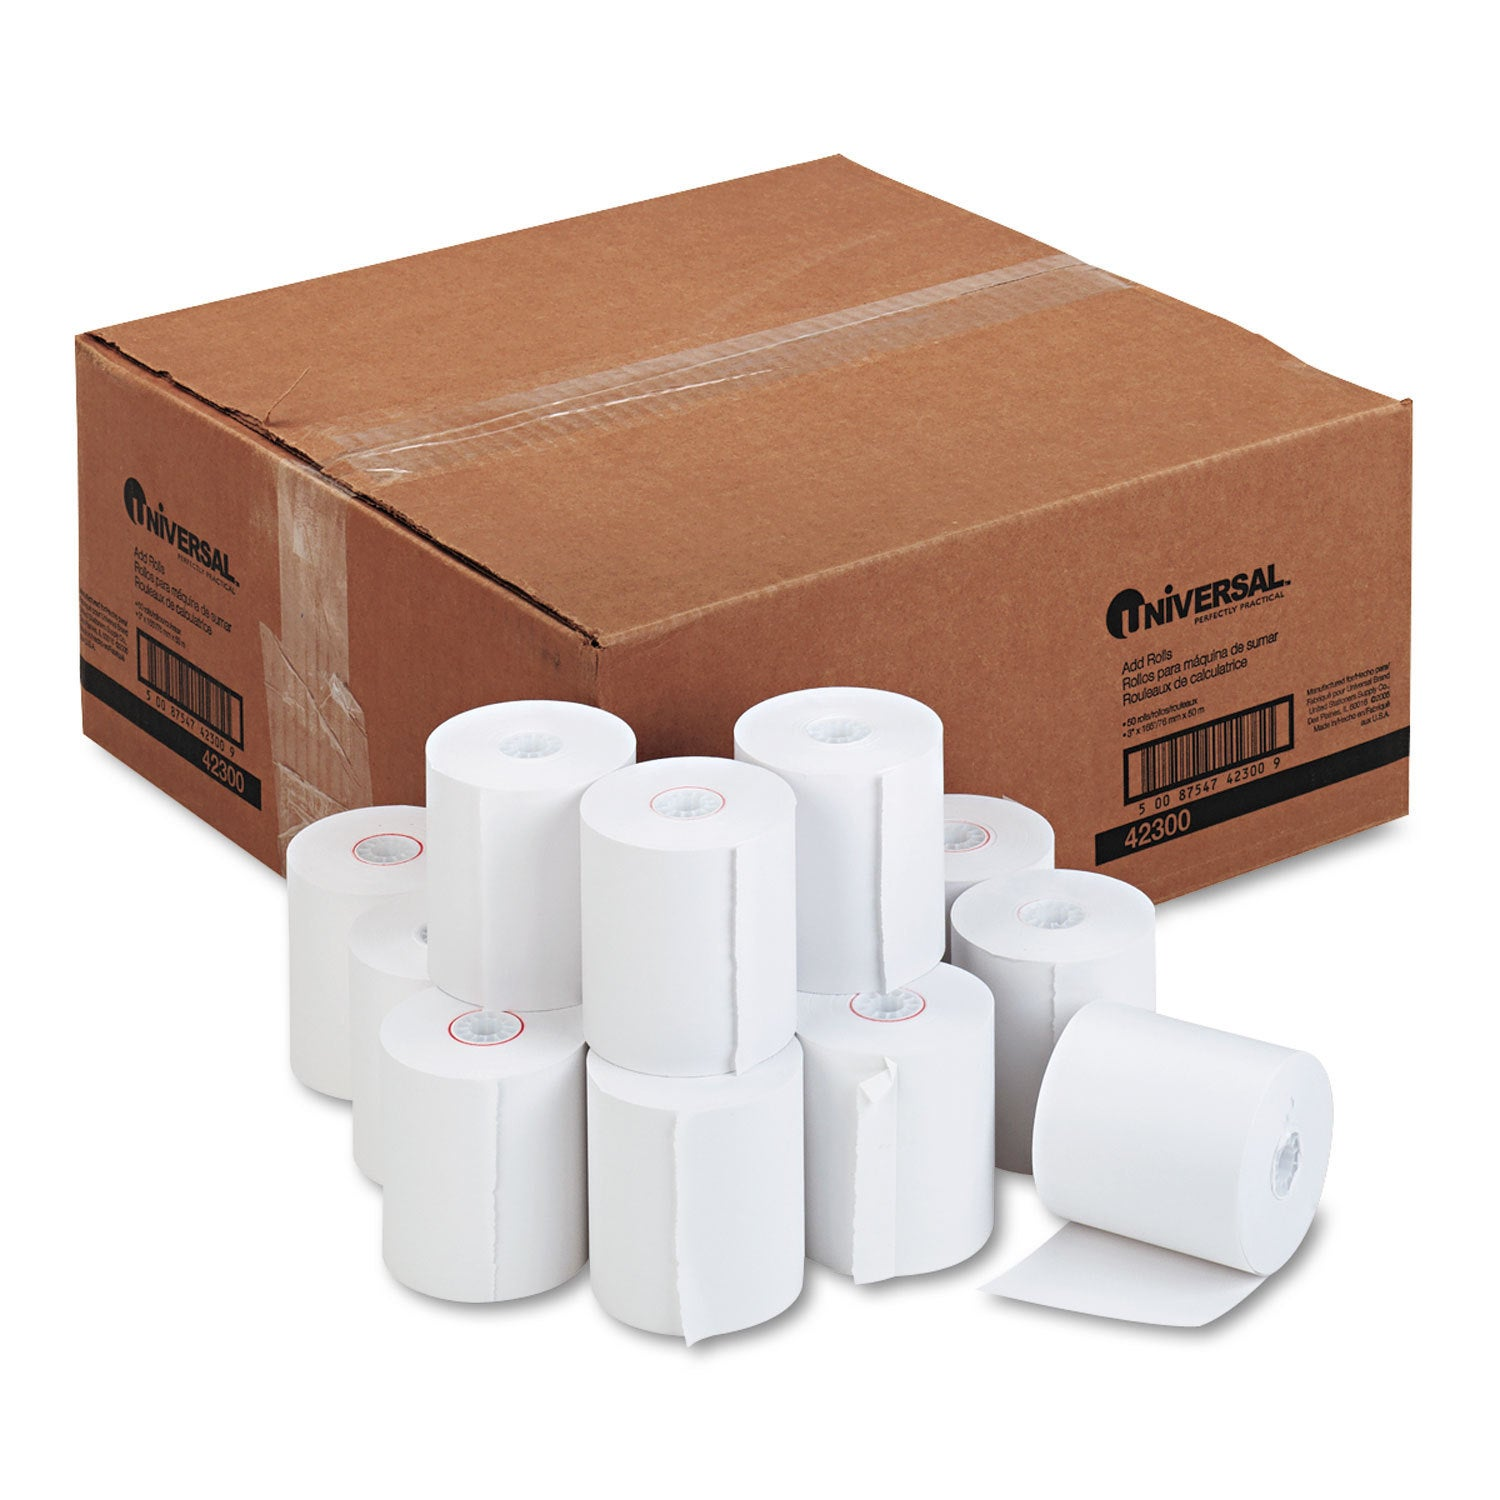 Universal 1-Ply Cash Register/Point of Sale Roll 16 -pound 1/2-inch Core  3-inch x 165 ft 50/Carton